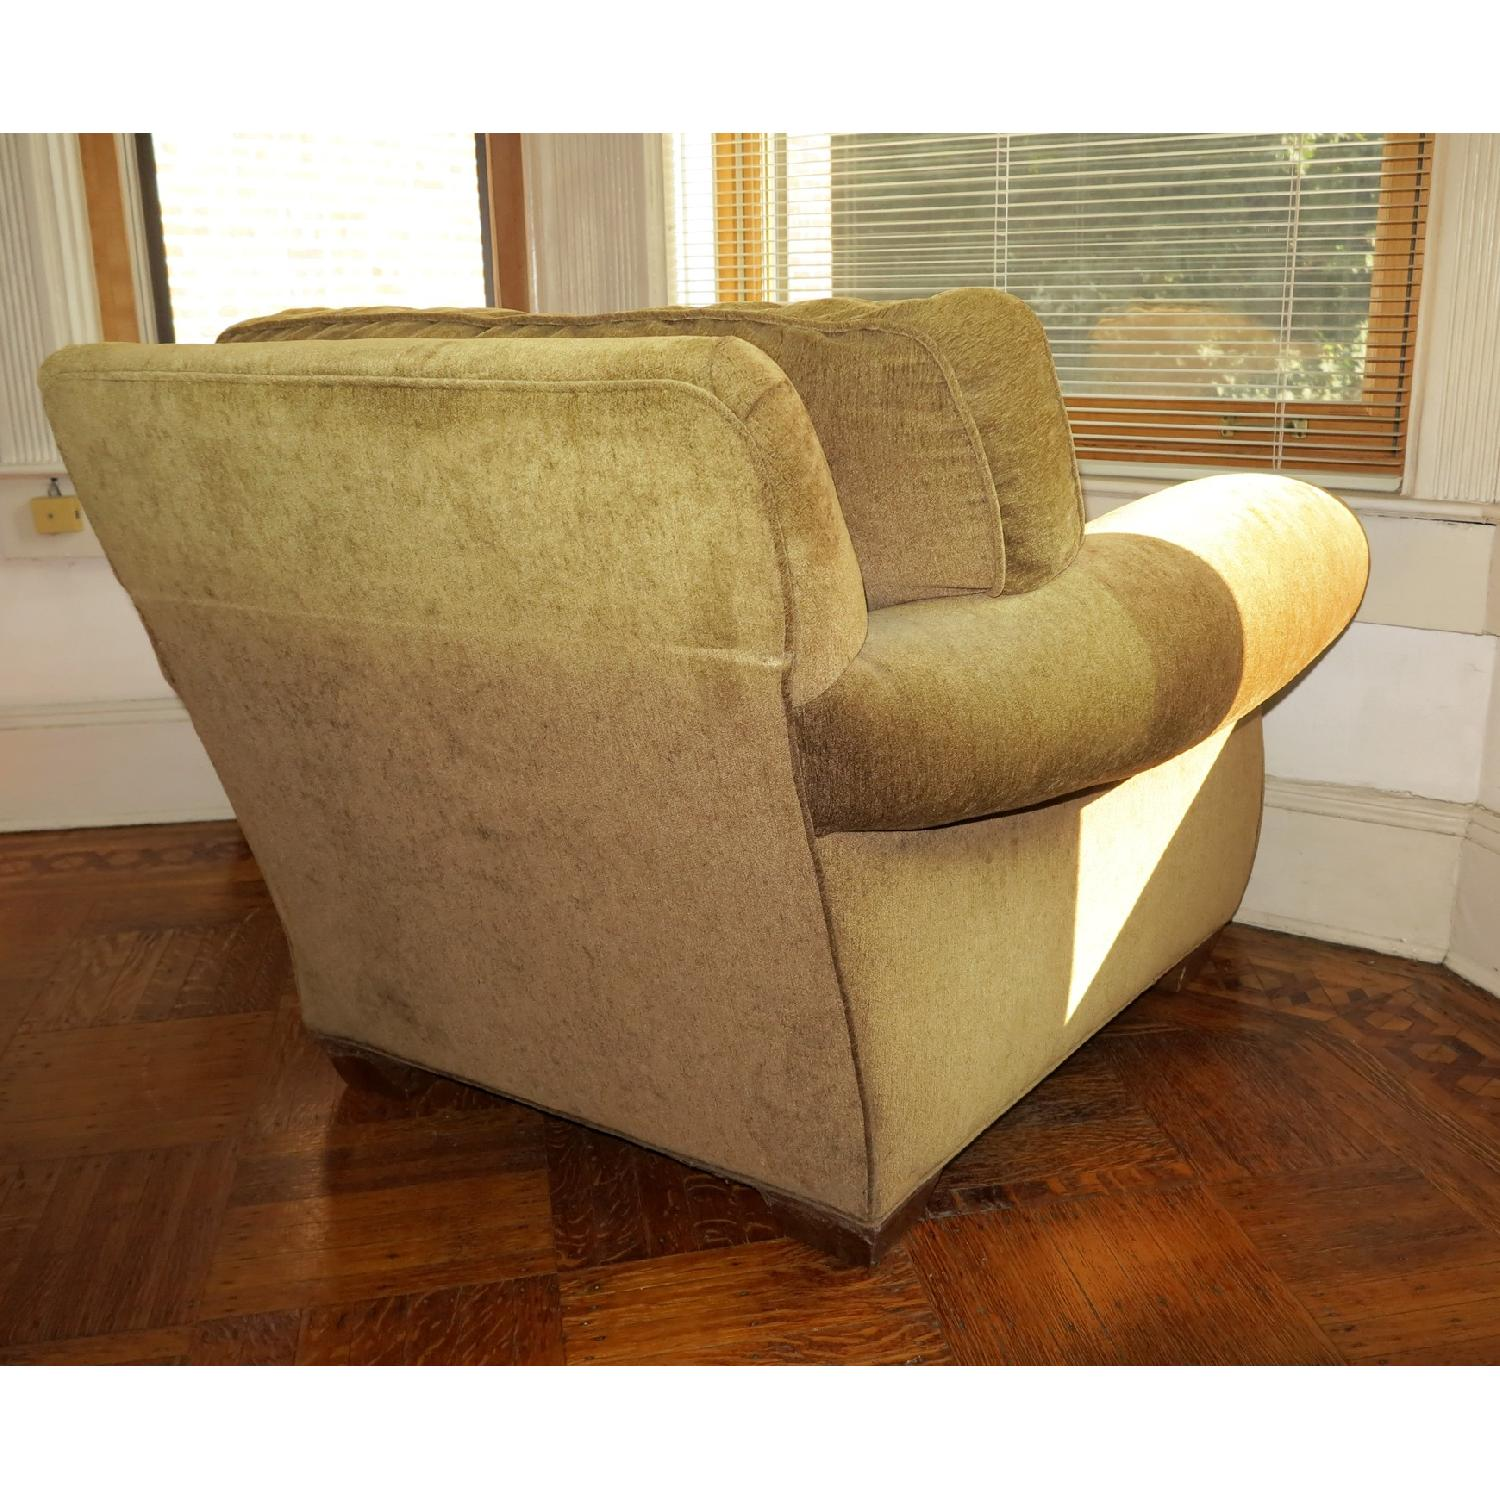 Lee Industries Handcrafted Armchair & Ottoman - image-3